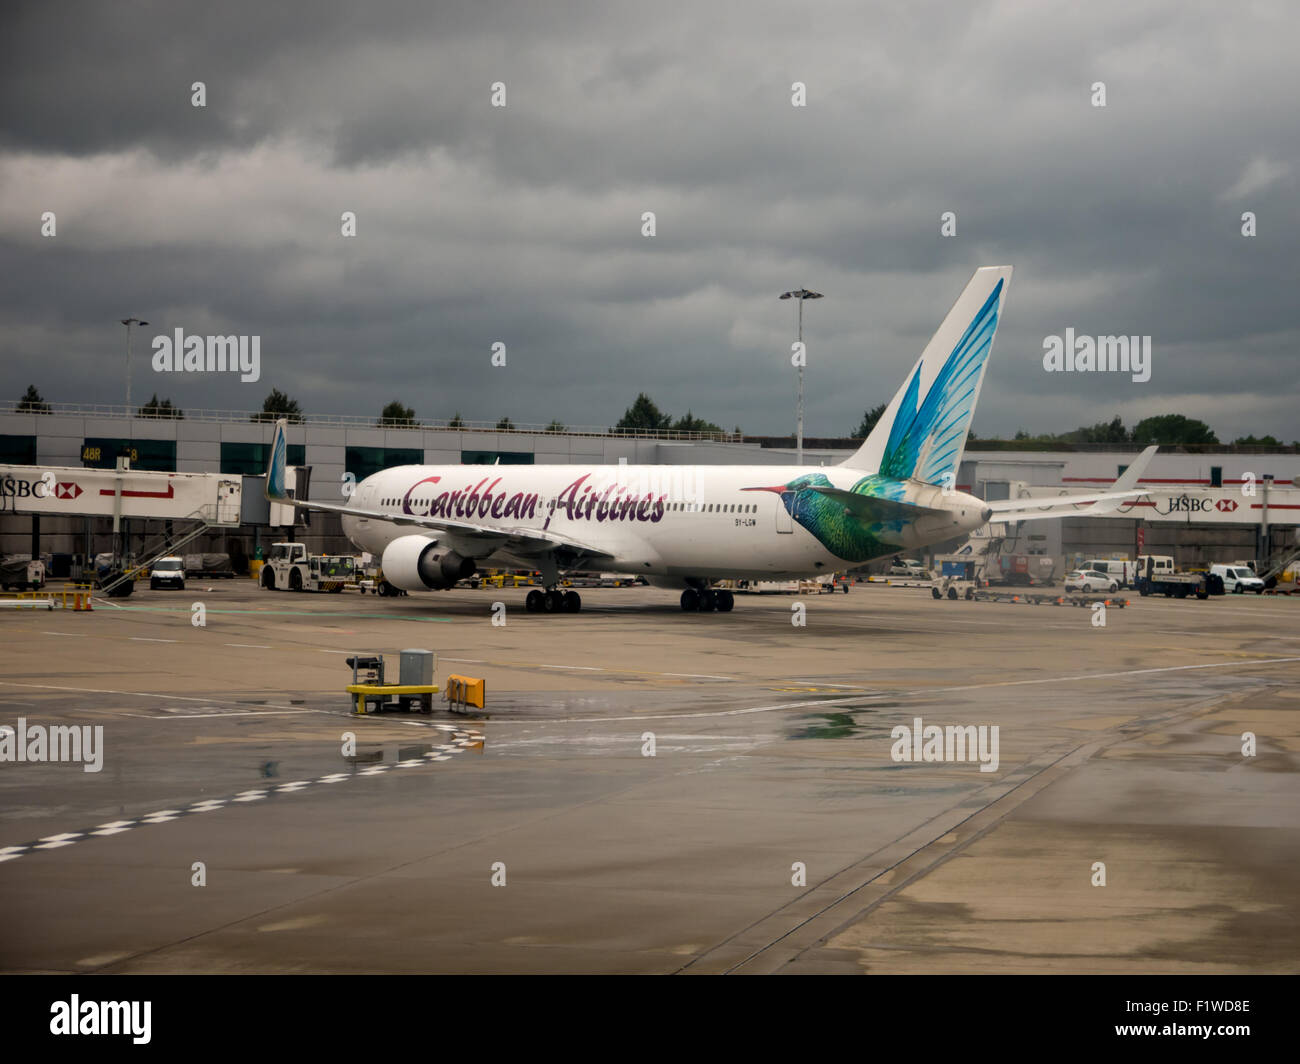 Caribbean Airlines 767, registration 9Y-LGW, at gate 48R of London Gatwick Airport, North Terminal - Stock Image